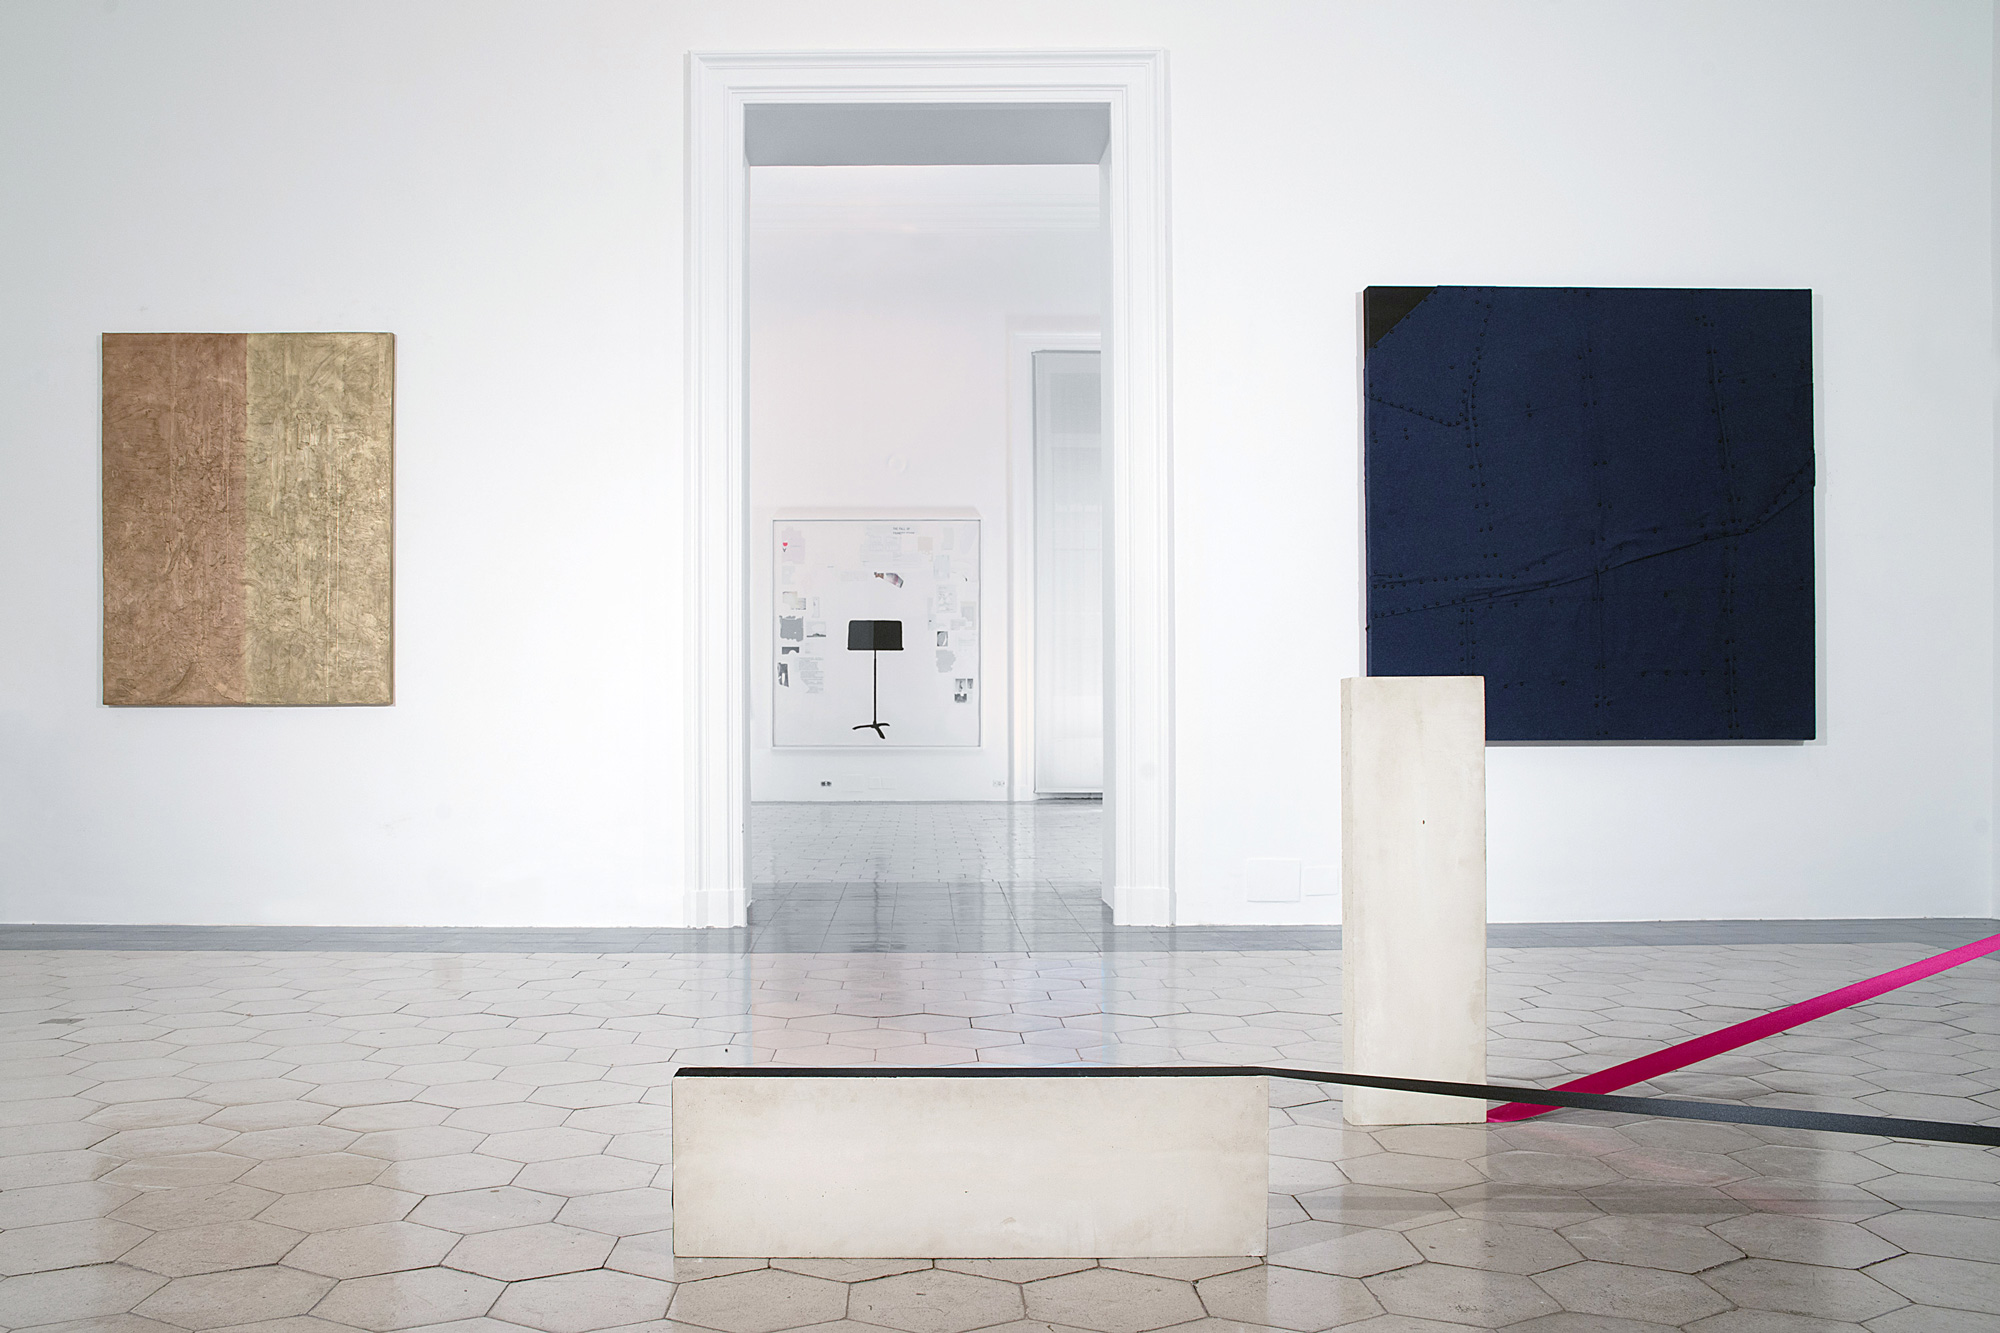 Installation view (pictured with Frances Stark, background;  Mitzi Pederson, foreground; Tom Burr, right)